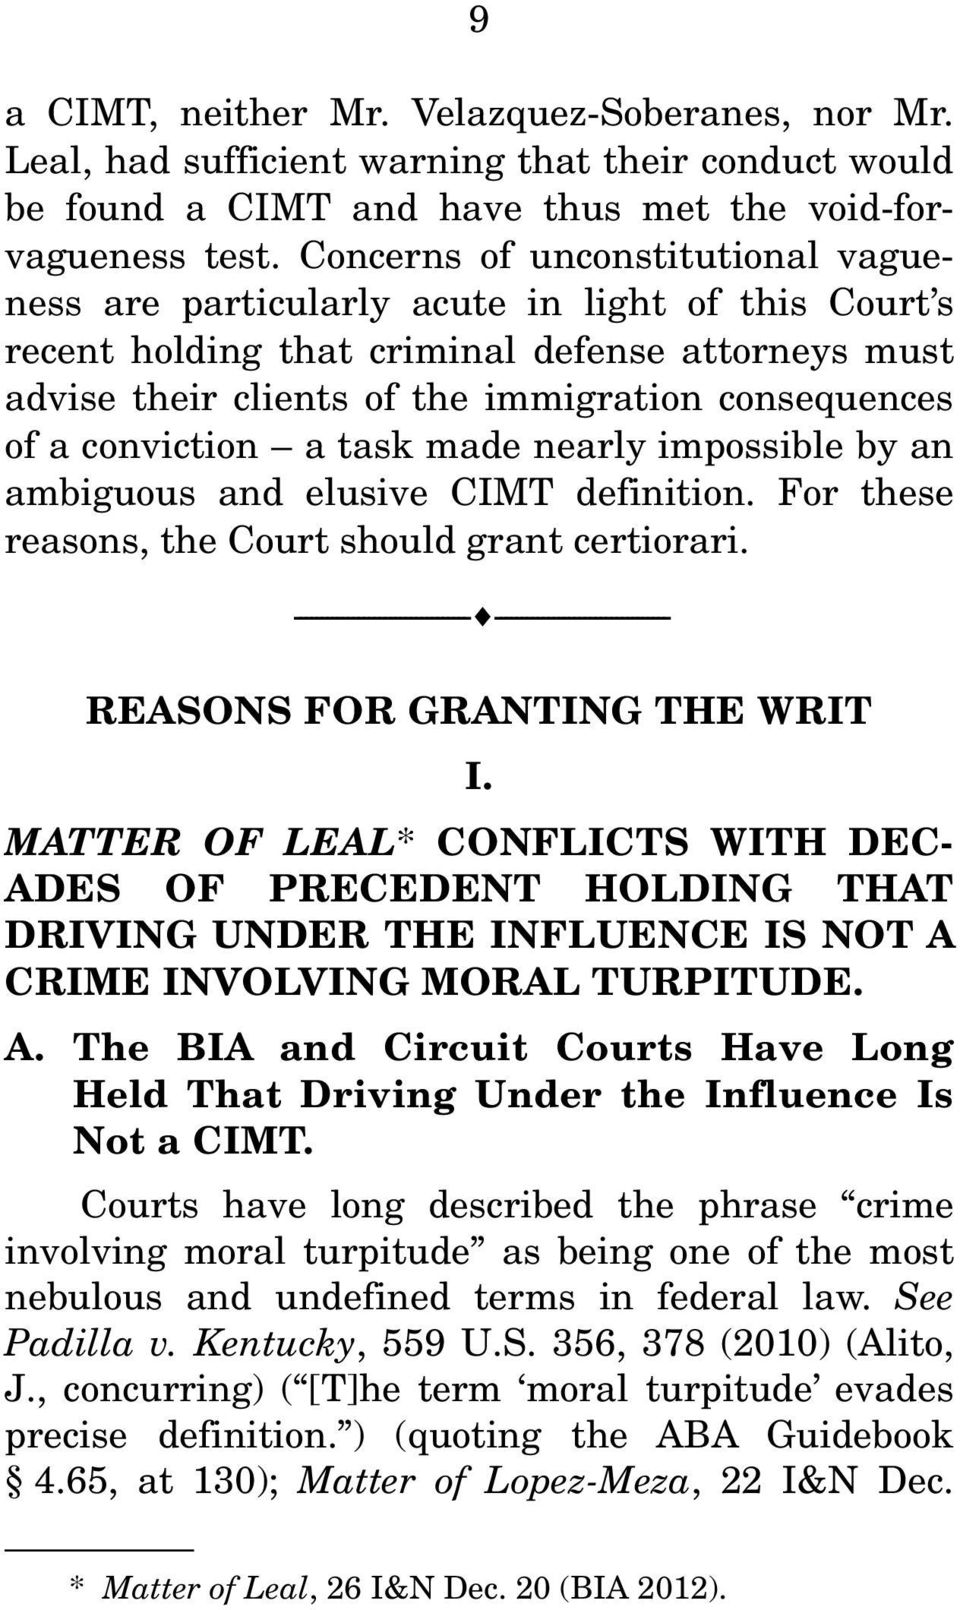 conviction a task made nearly impossible by an ambiguous and elusive CIMT definition. For these reasons, the Court should grant certiorari.